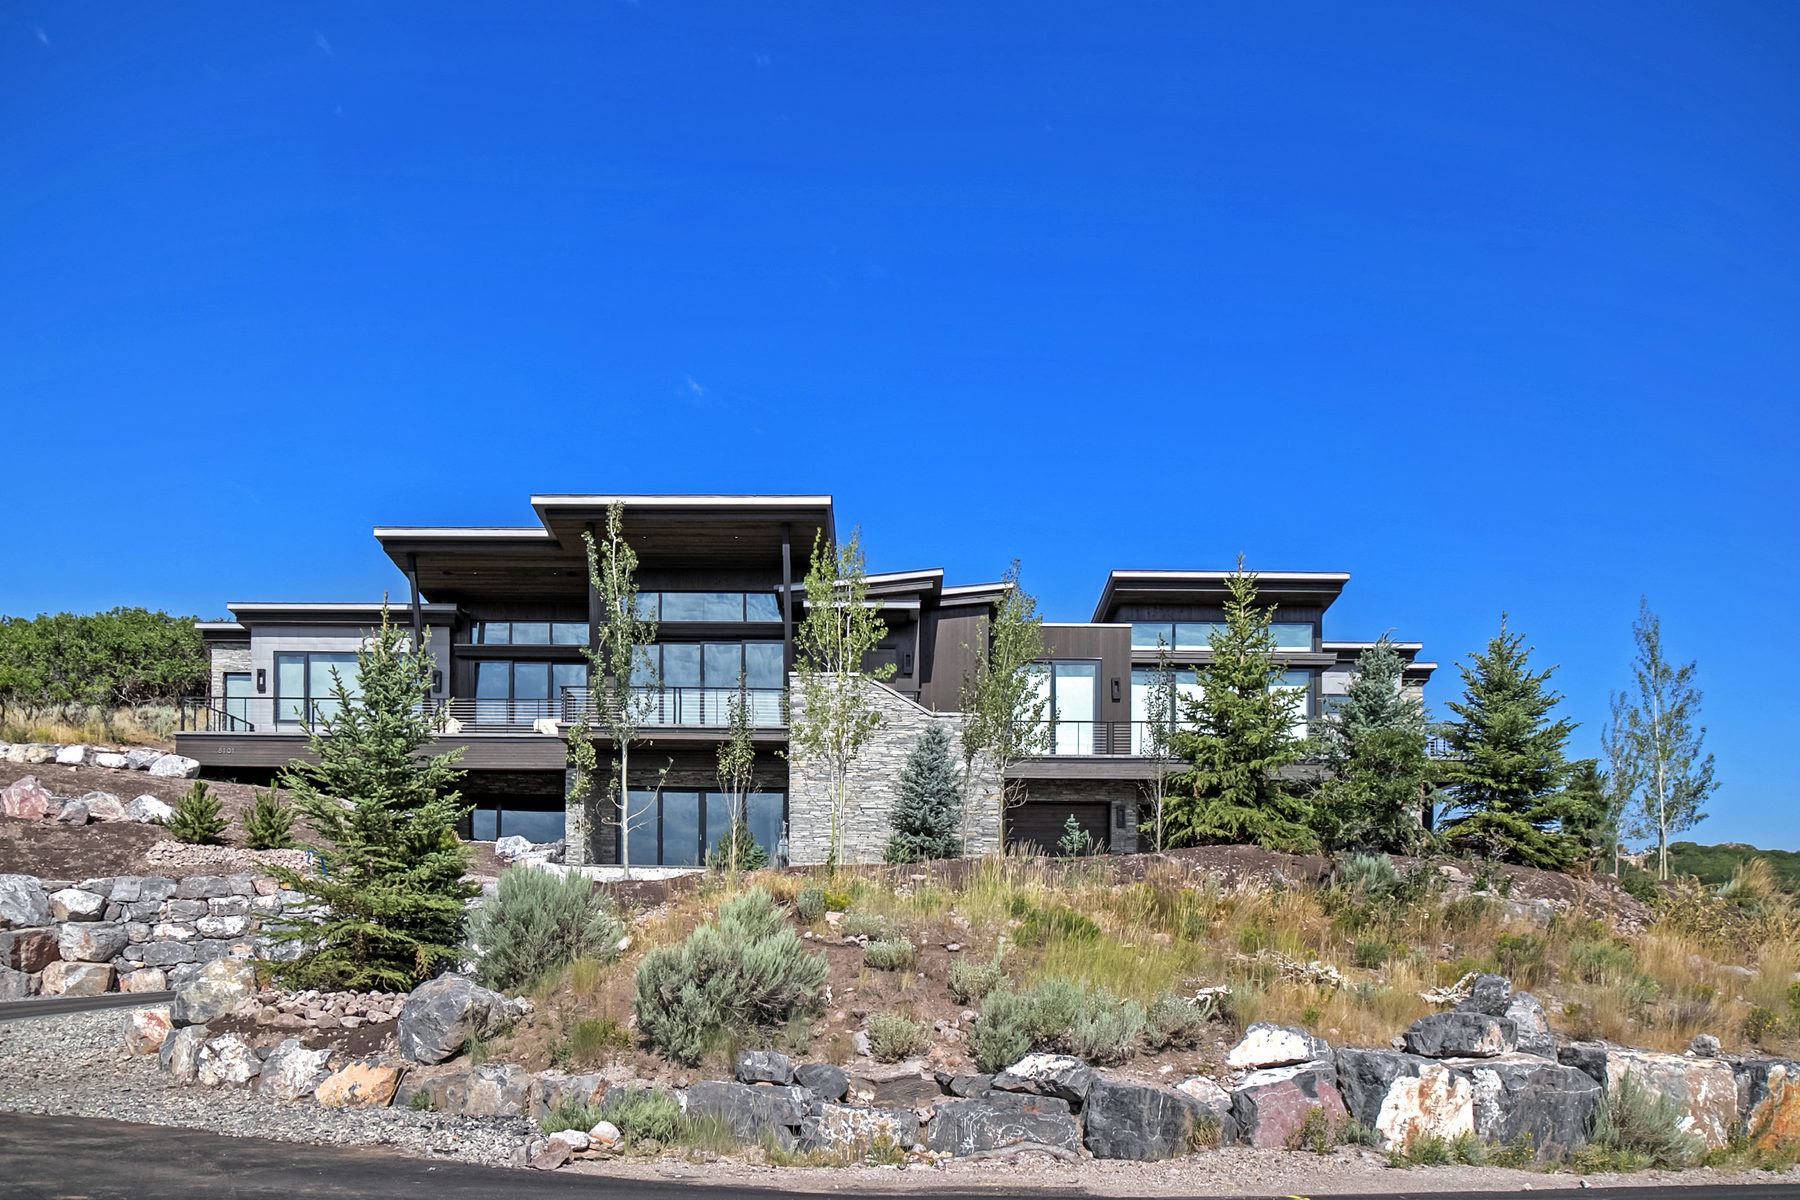 Casa Unifamiliar por un Venta en Mountain Modern Masterpiece! 8101 N Sunrise Loop Park City, Utah, 84098 Estados Unidos